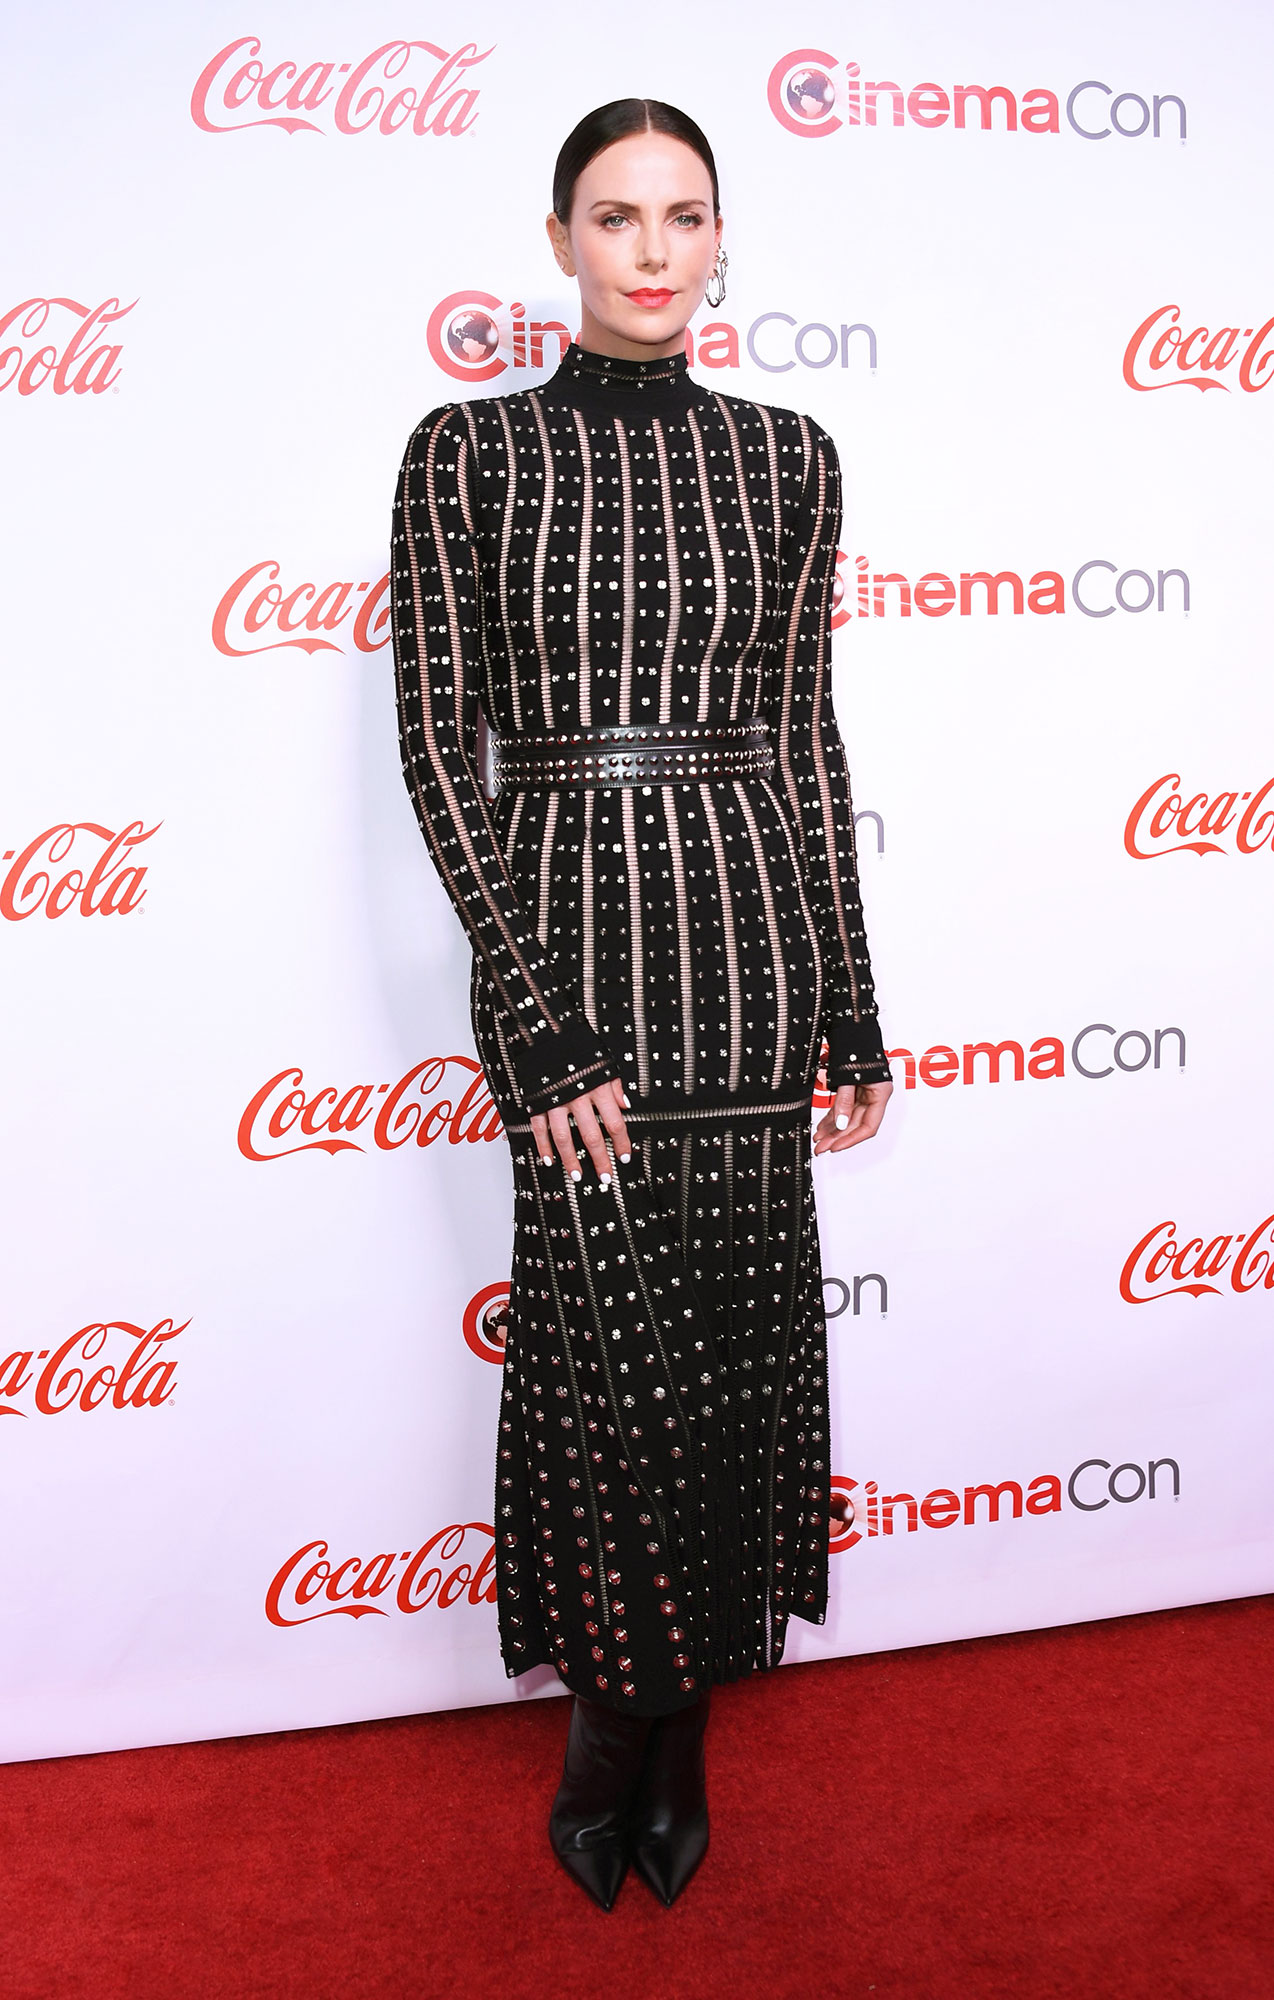 Charlize Theron The Stars Are Bringing Their Style A-Game to CinemaCon - The Long Shot actress stunned in a studded Alexander McQueen midi and Jimmy Choo boots on Thursday, April 4.